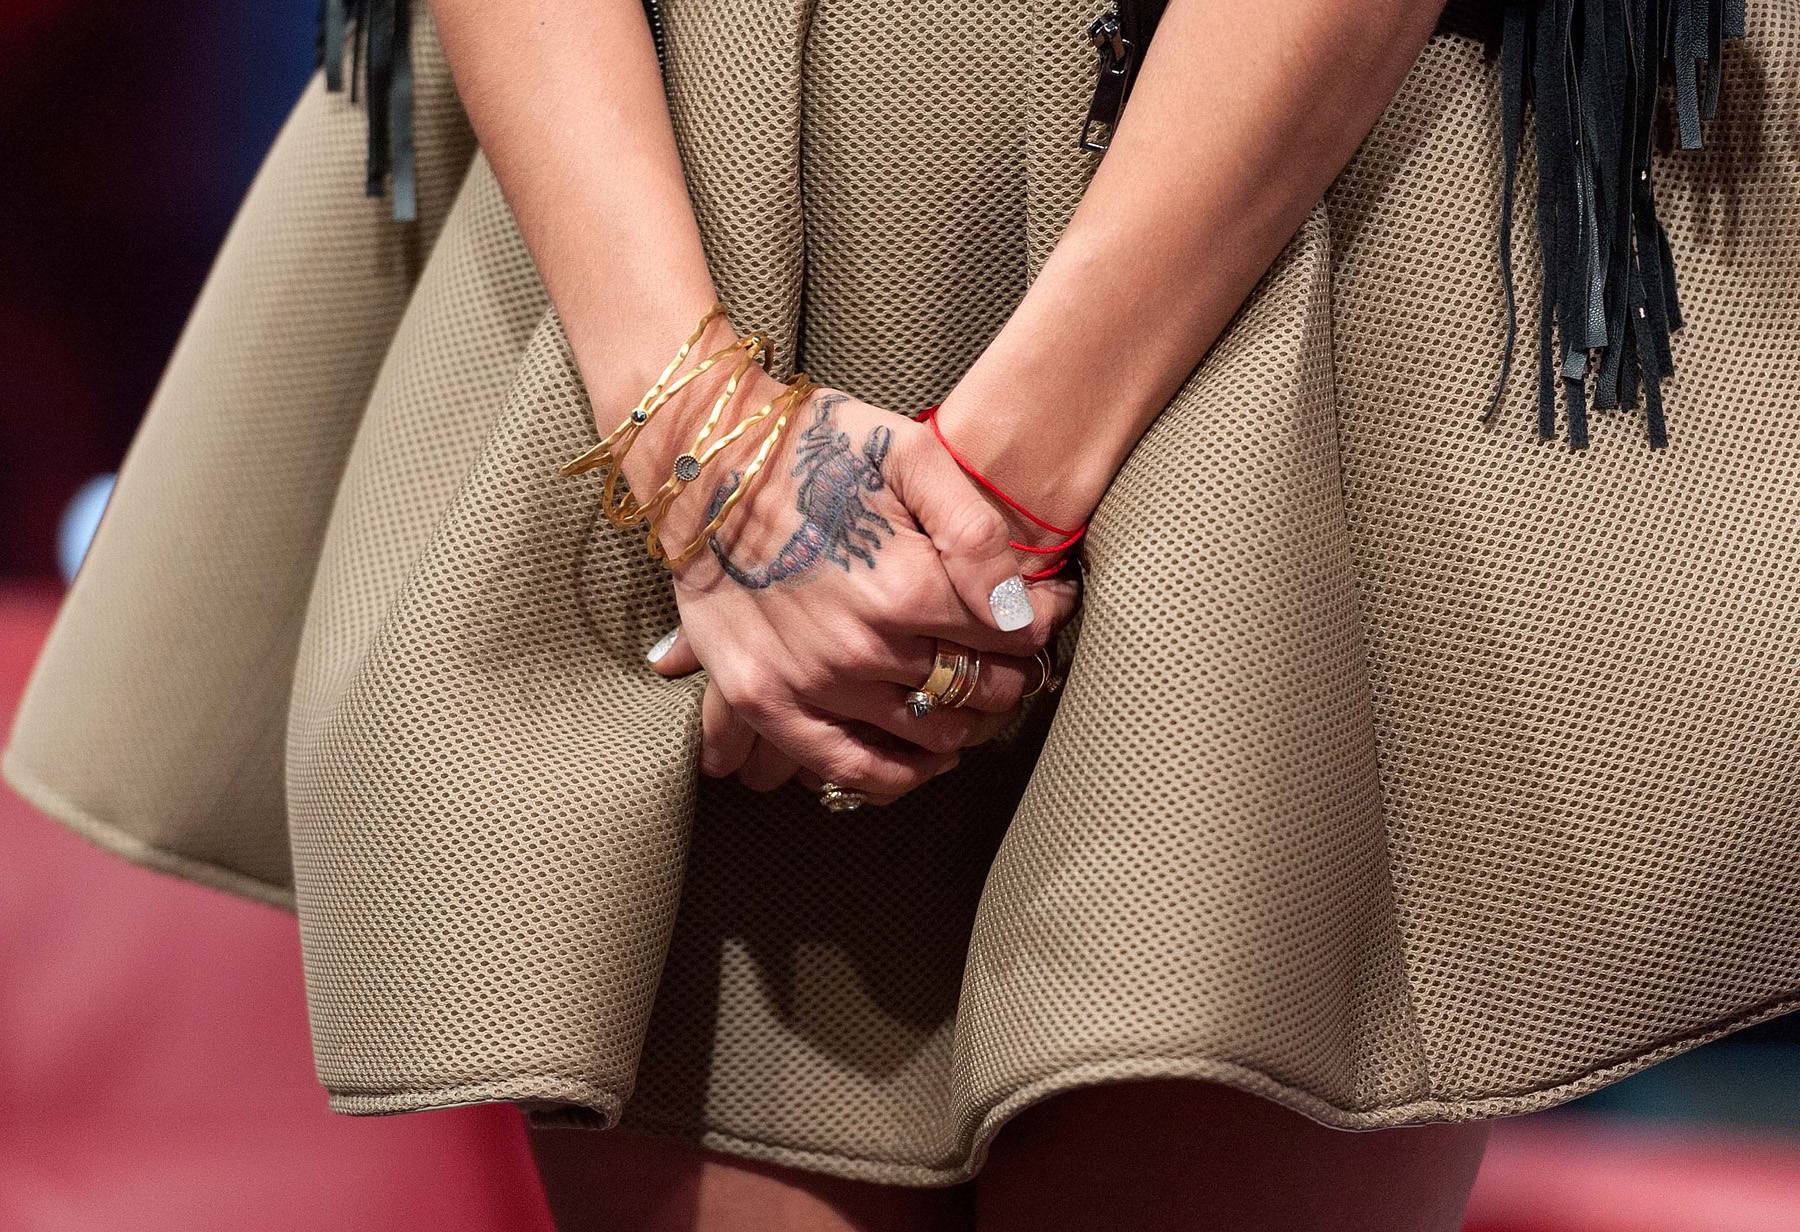 Sparkling Bangles - (Photo: D Dipasupil/BET/Getty Images)